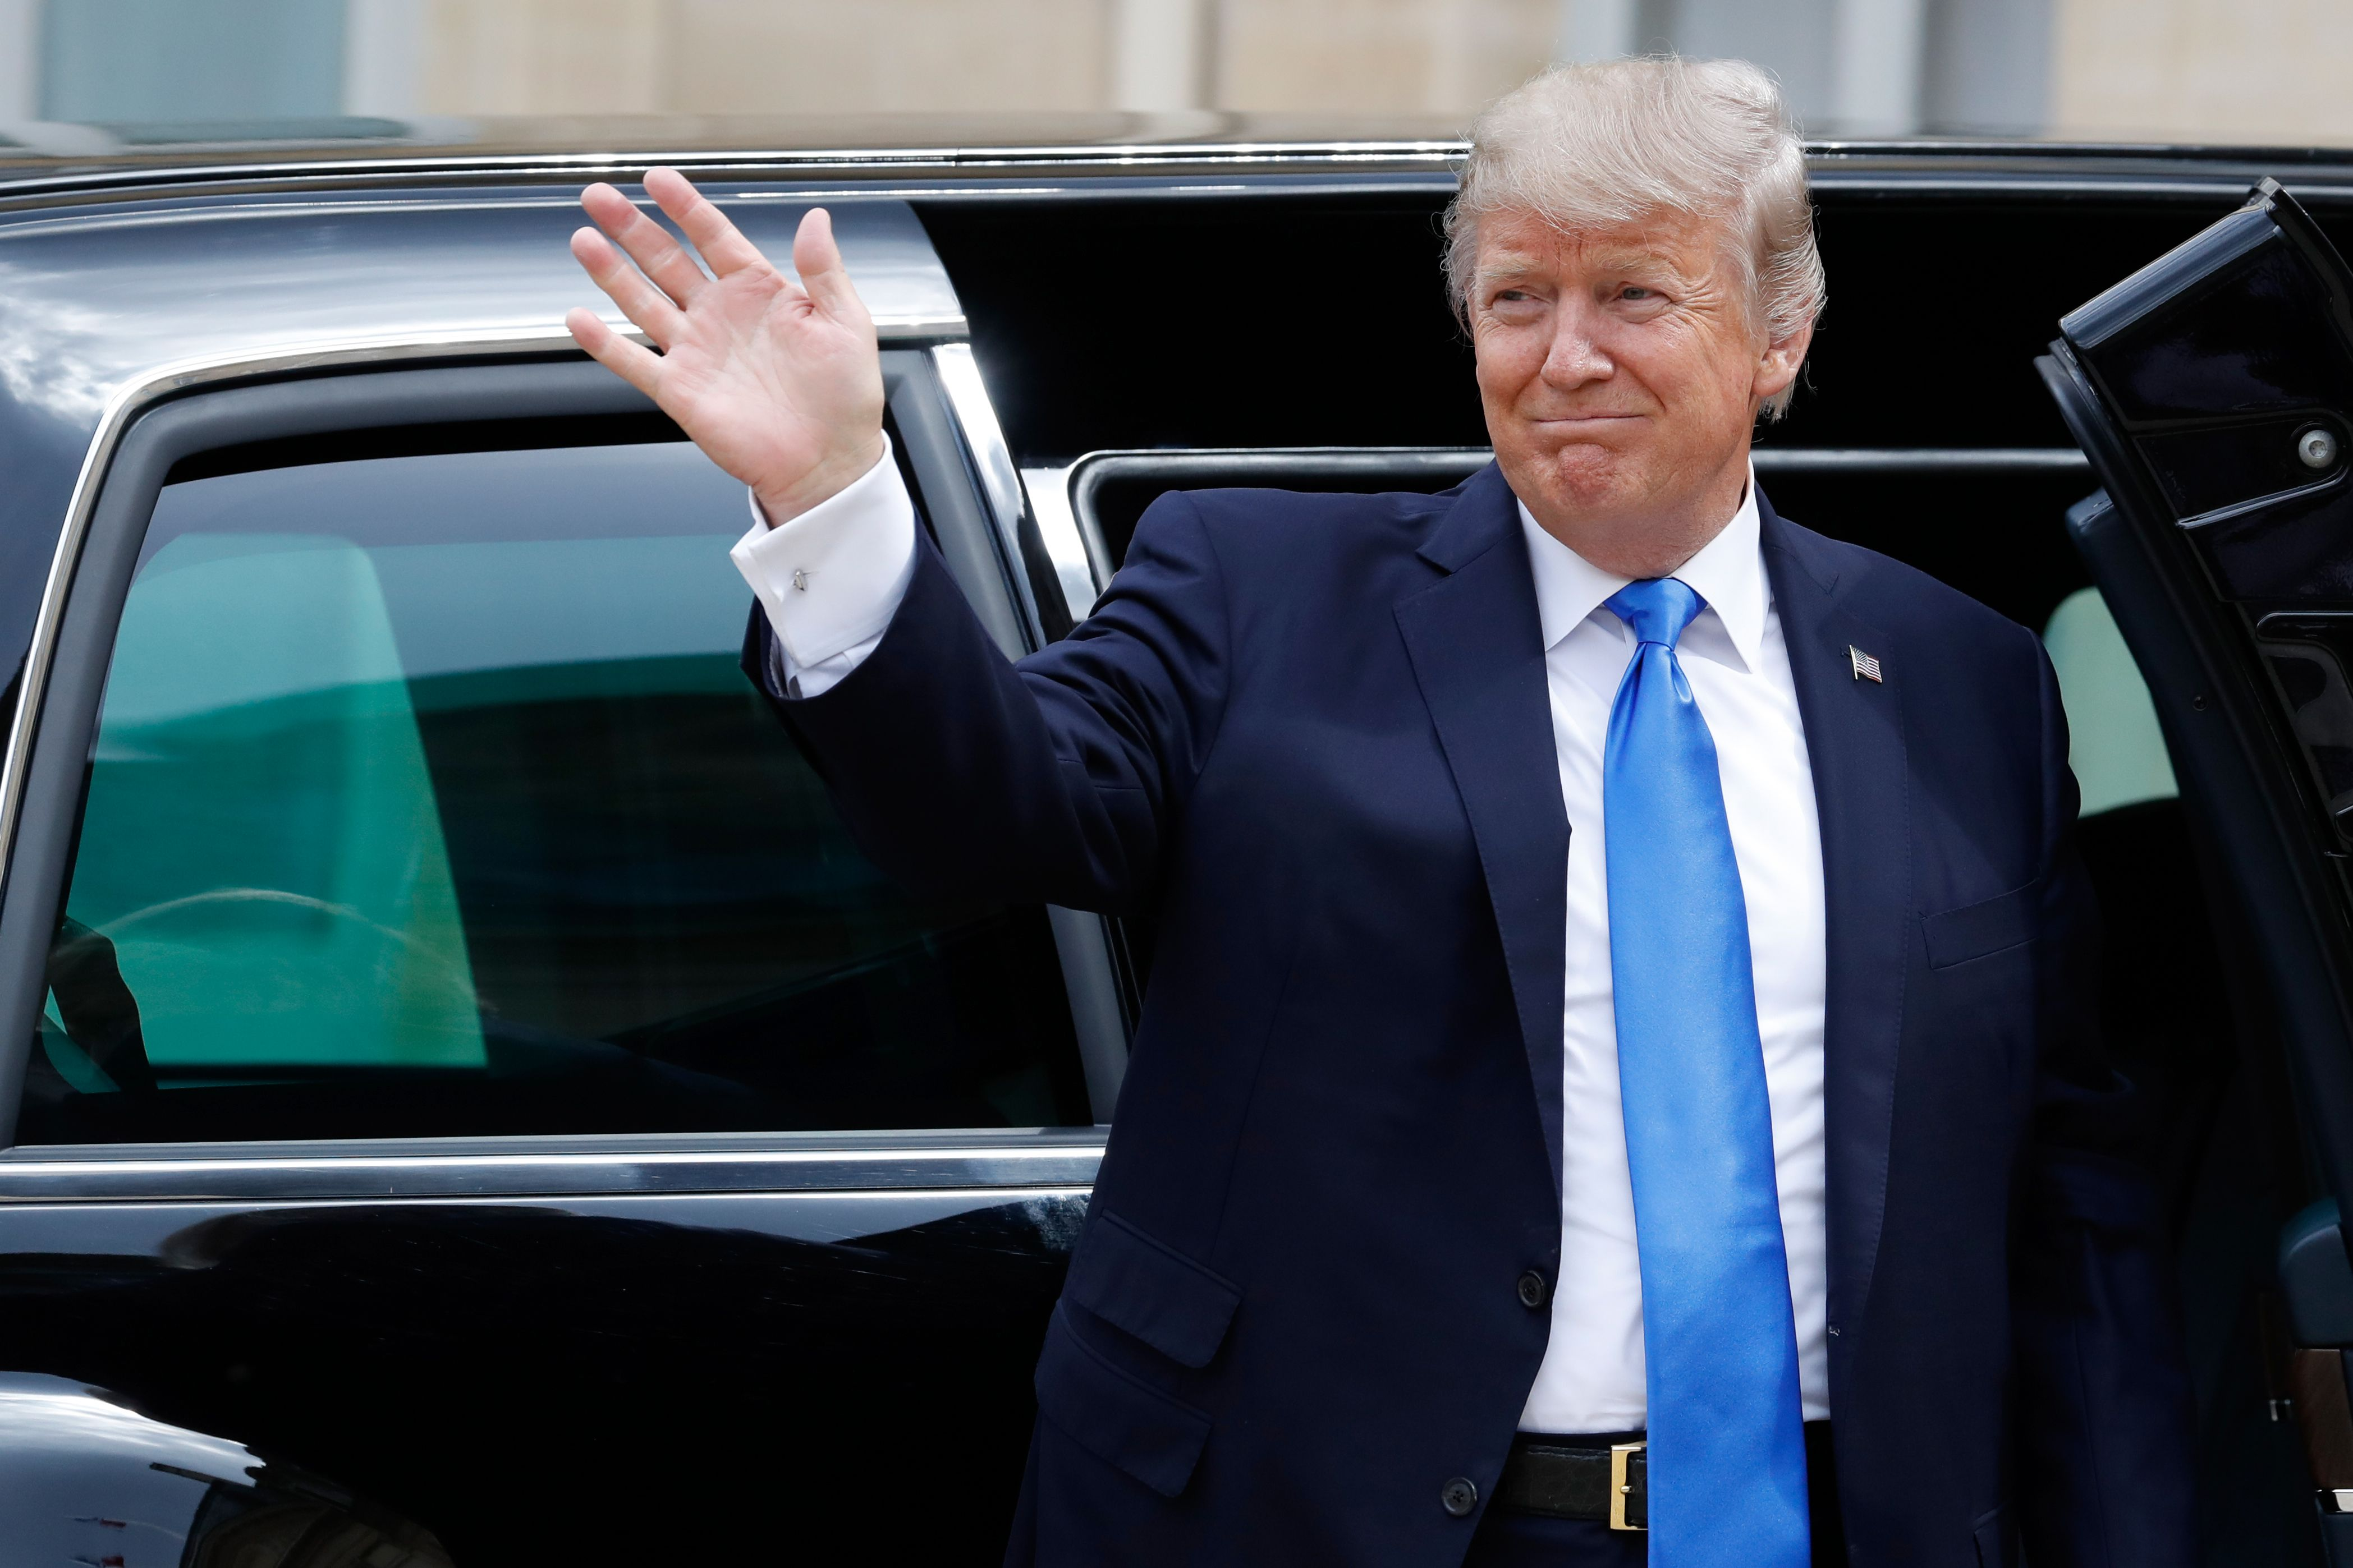 US President Donald Trump gets out of the car as he arrives at the Elysee Palace on July 13, 2017 in Paris for a 24-hour trip that coincides with France's national day and the 100th anniversary of US involvement in World War I.